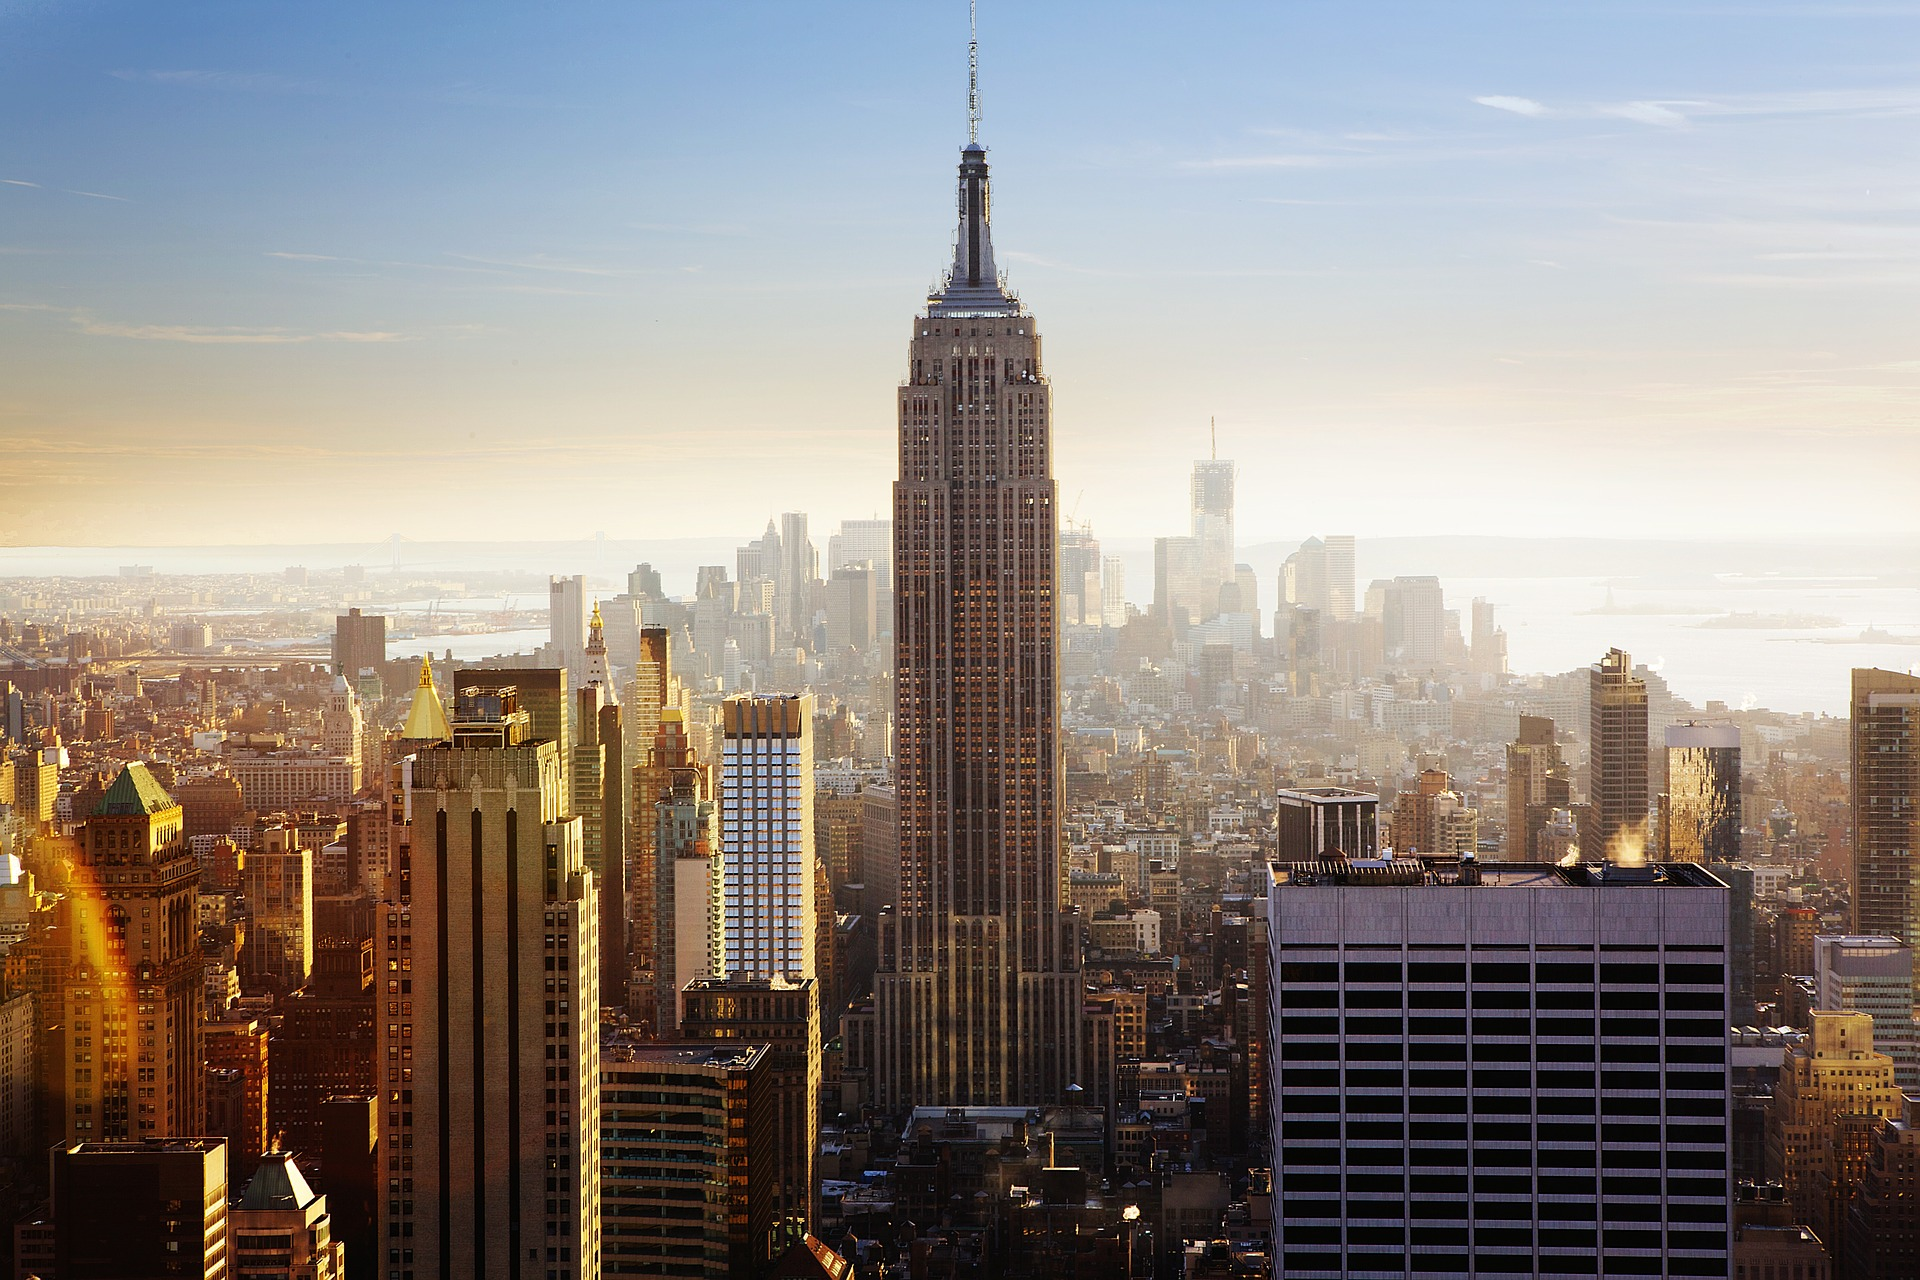 empire-state-building-1081929_1920 (3)